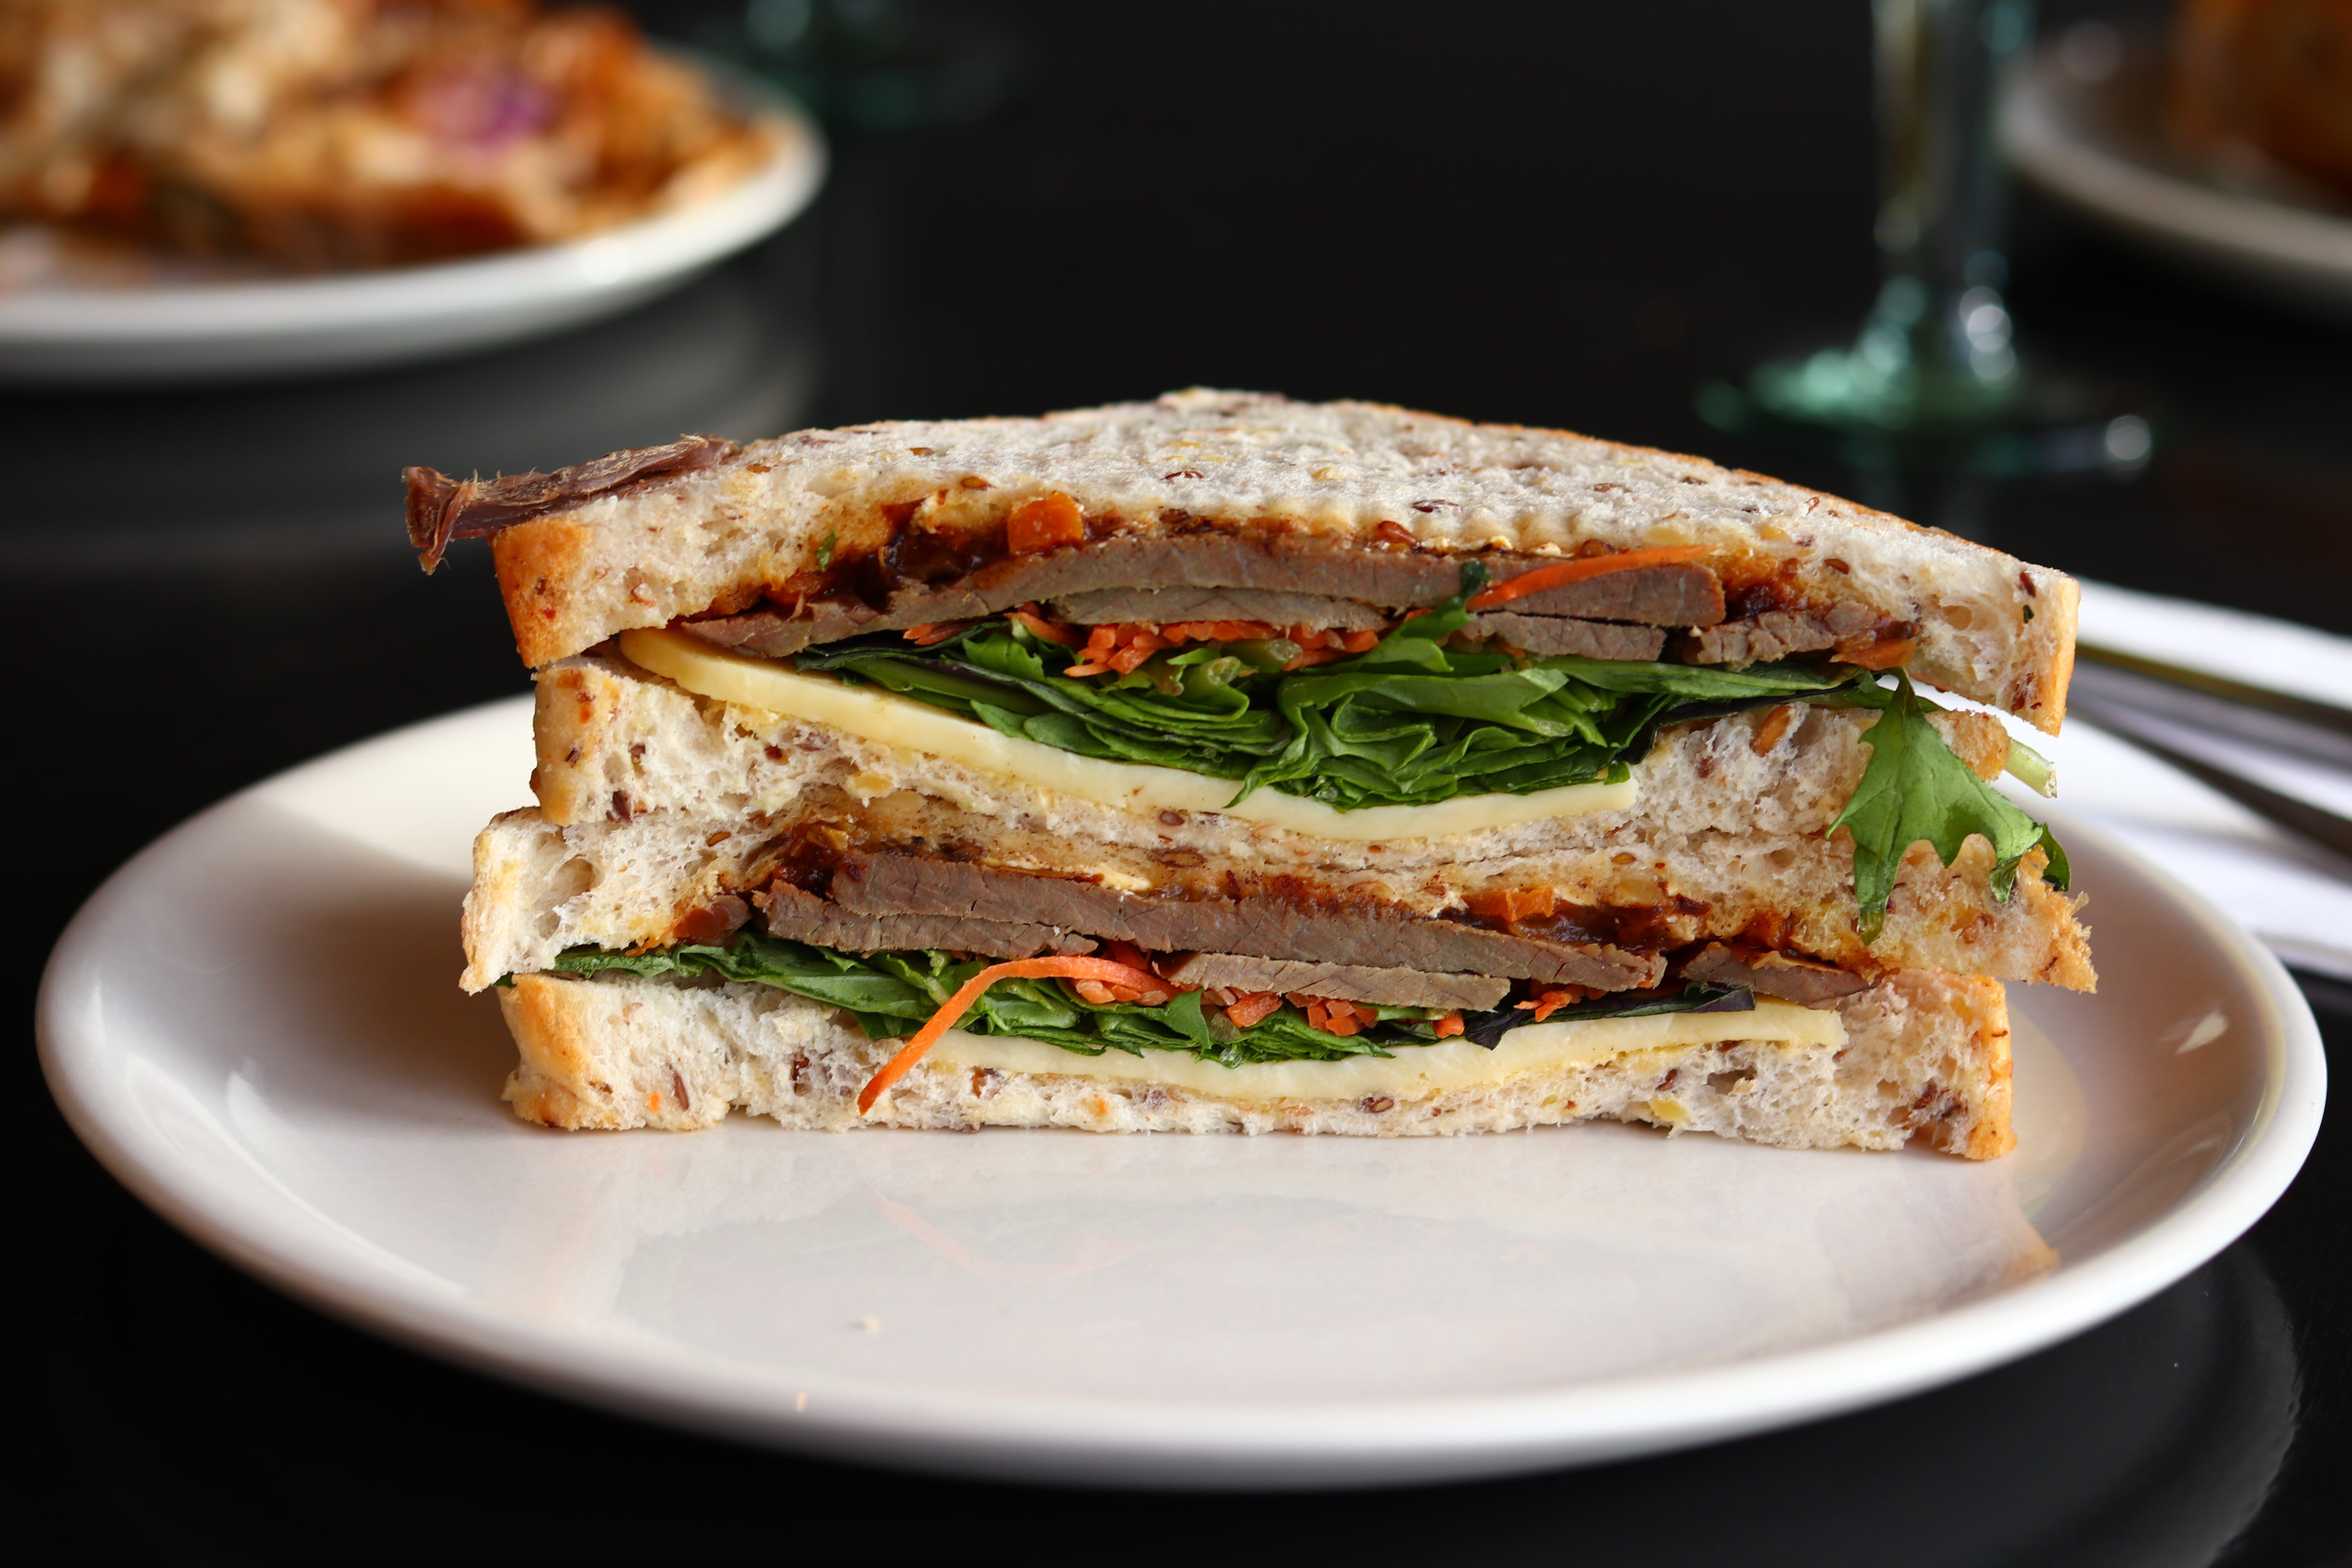 Close-Up Photo of Vegetable Sandwich on Plate